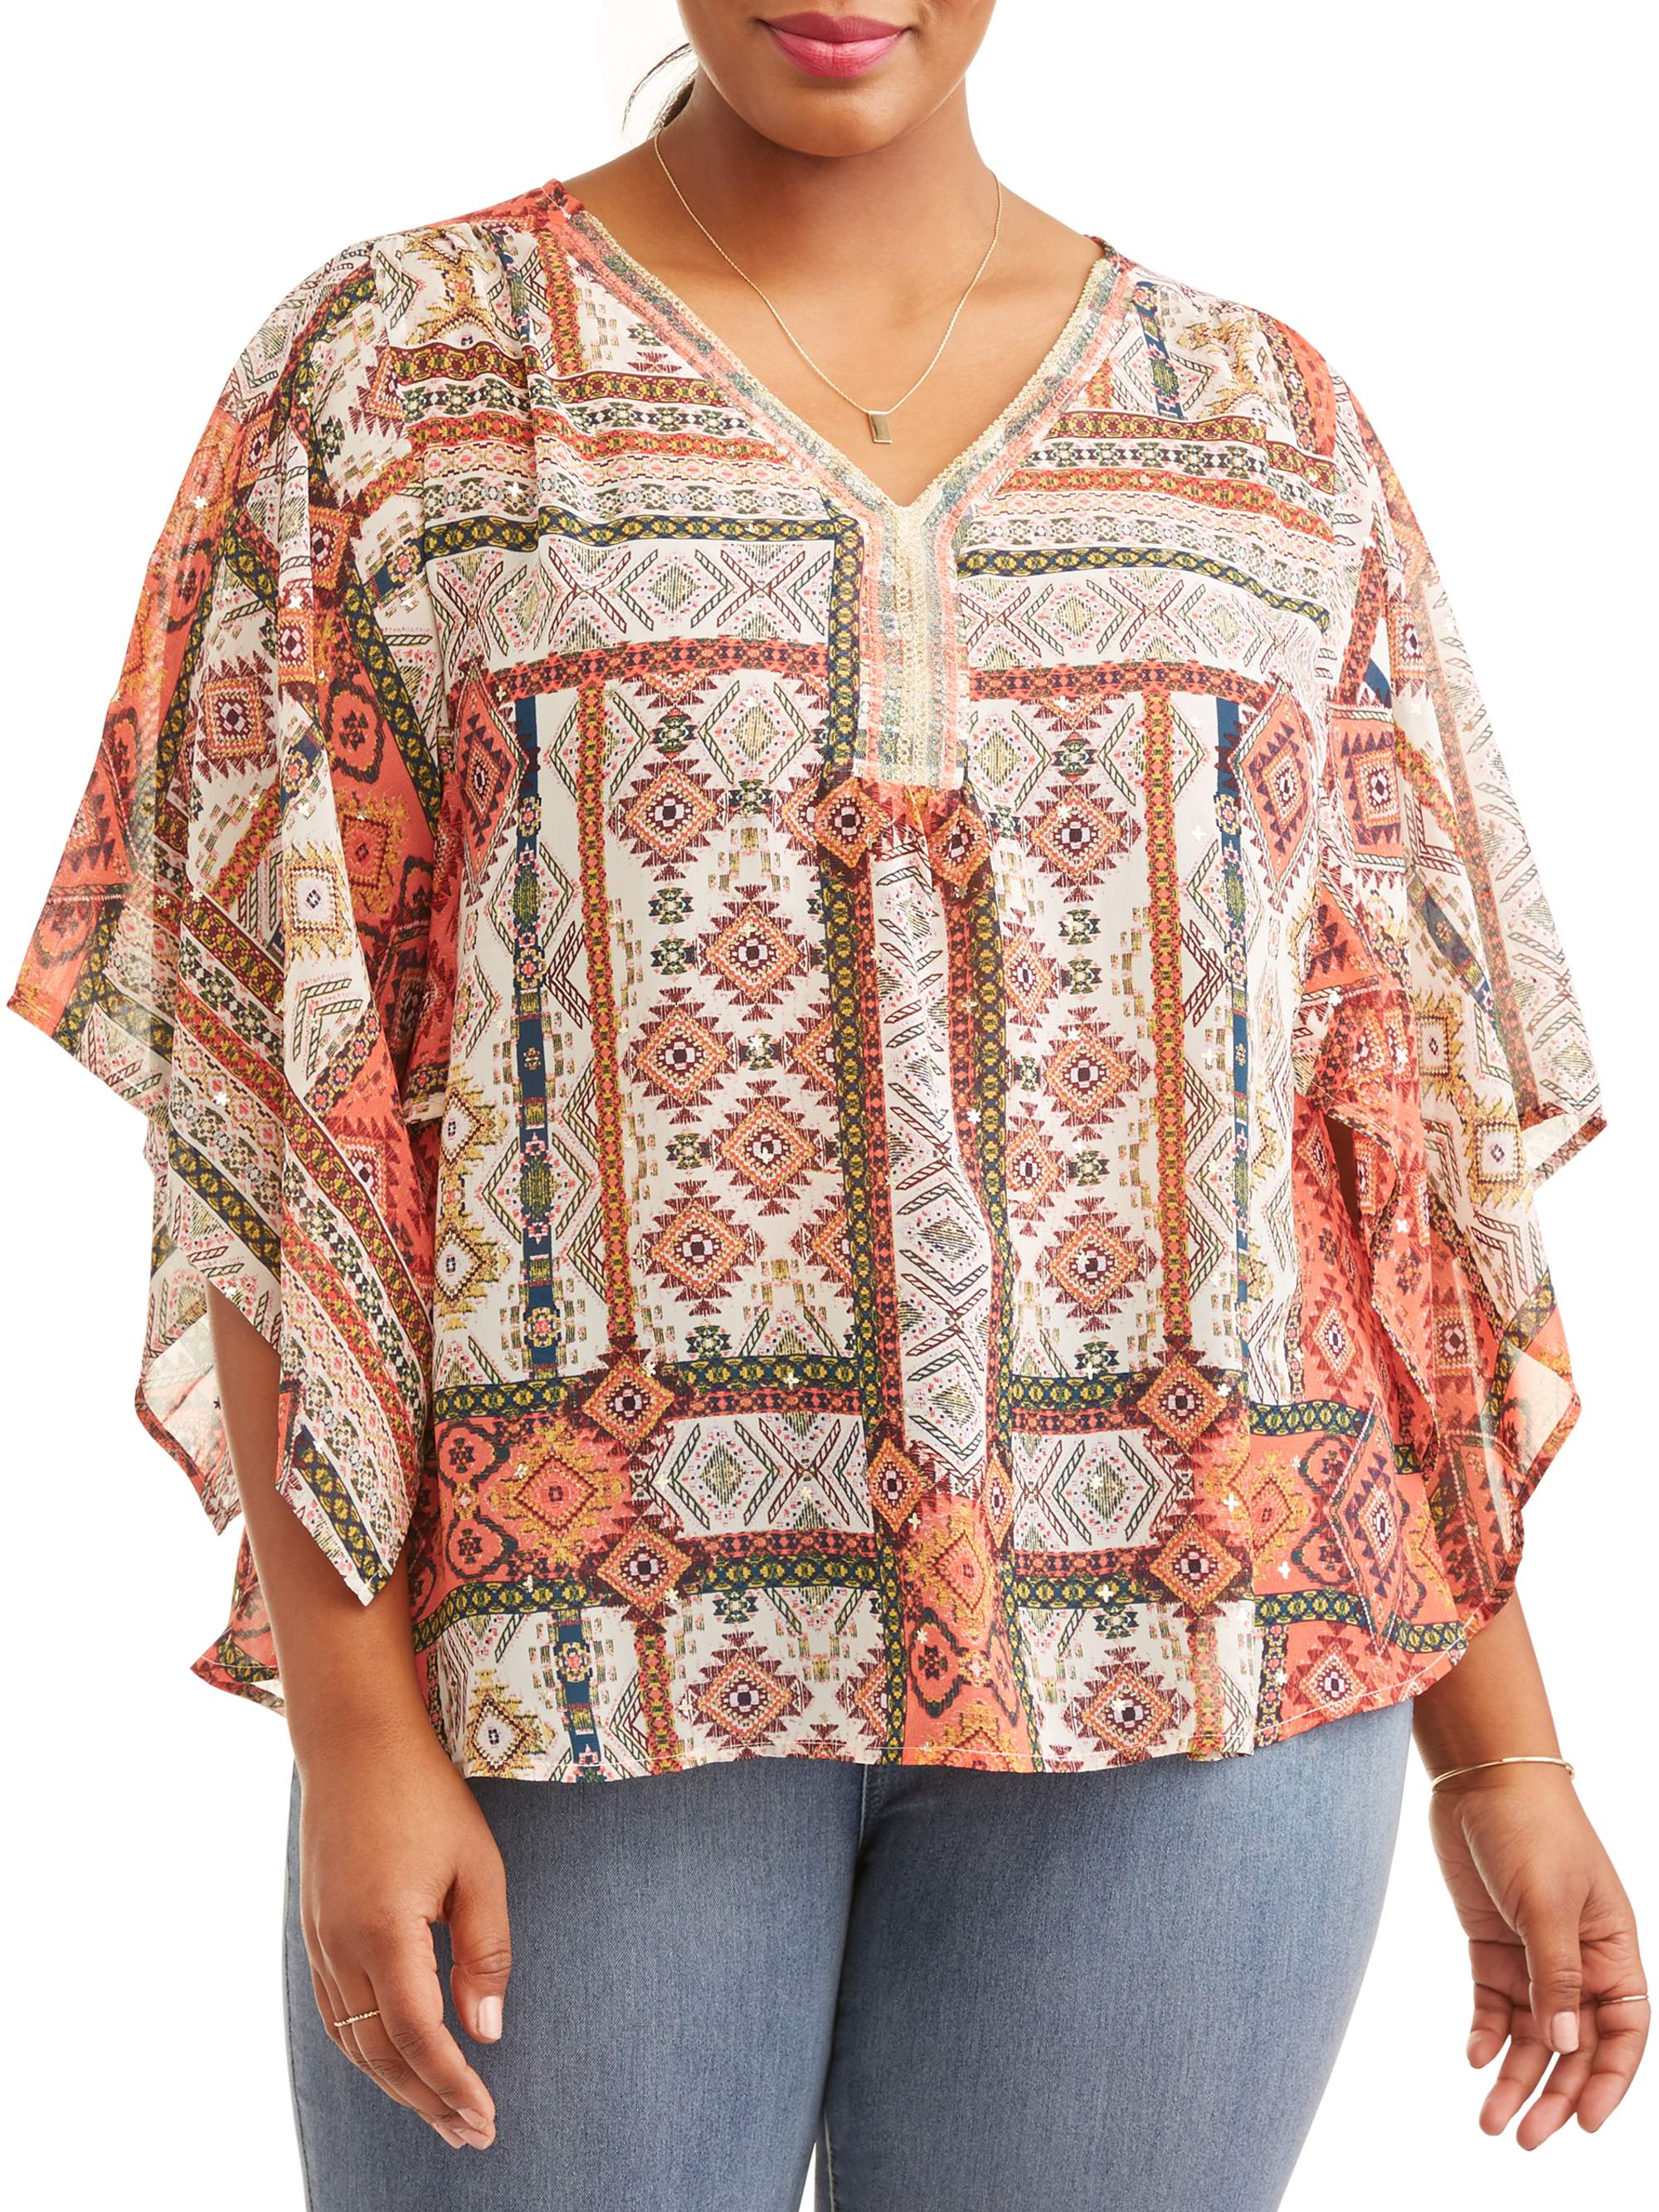 Lifestyle Attitudes Women's Plus Printed Chiffon Blouse